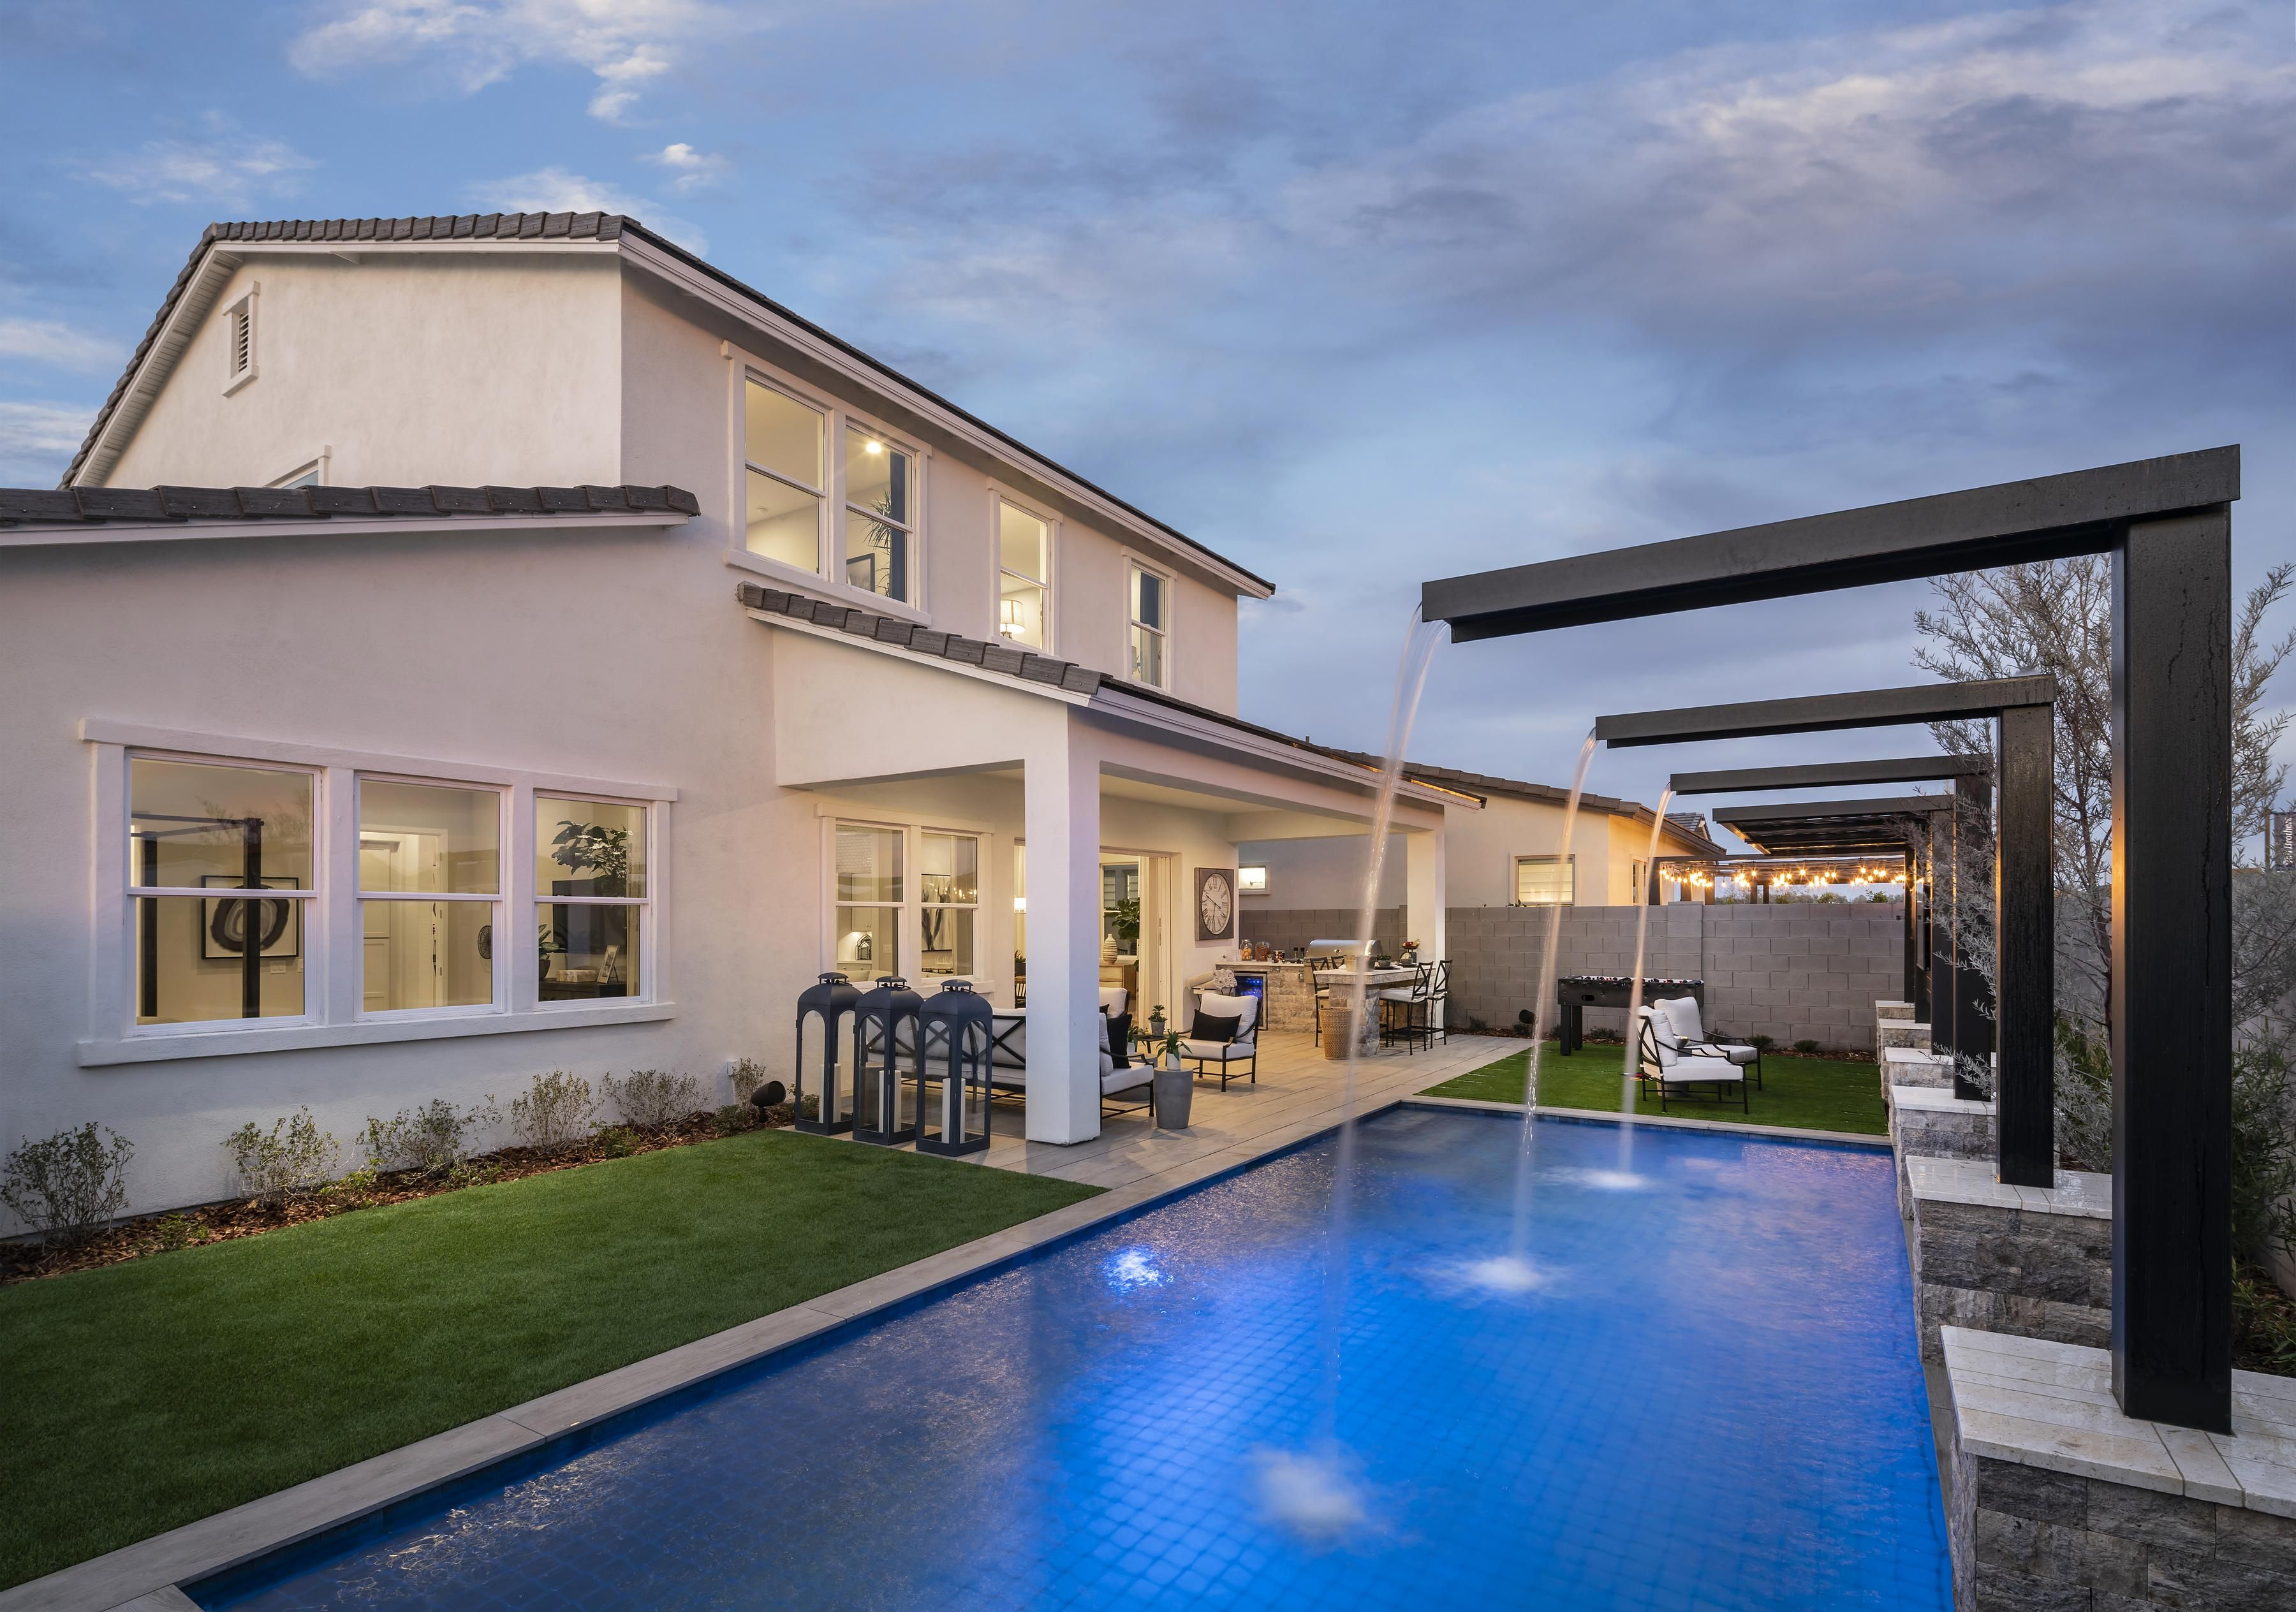 Live In Luxury With This Stunning Outdoor Patio With Plenty Of Room For Entertainment Luxury Homes Model Homes Modern Floor Plans